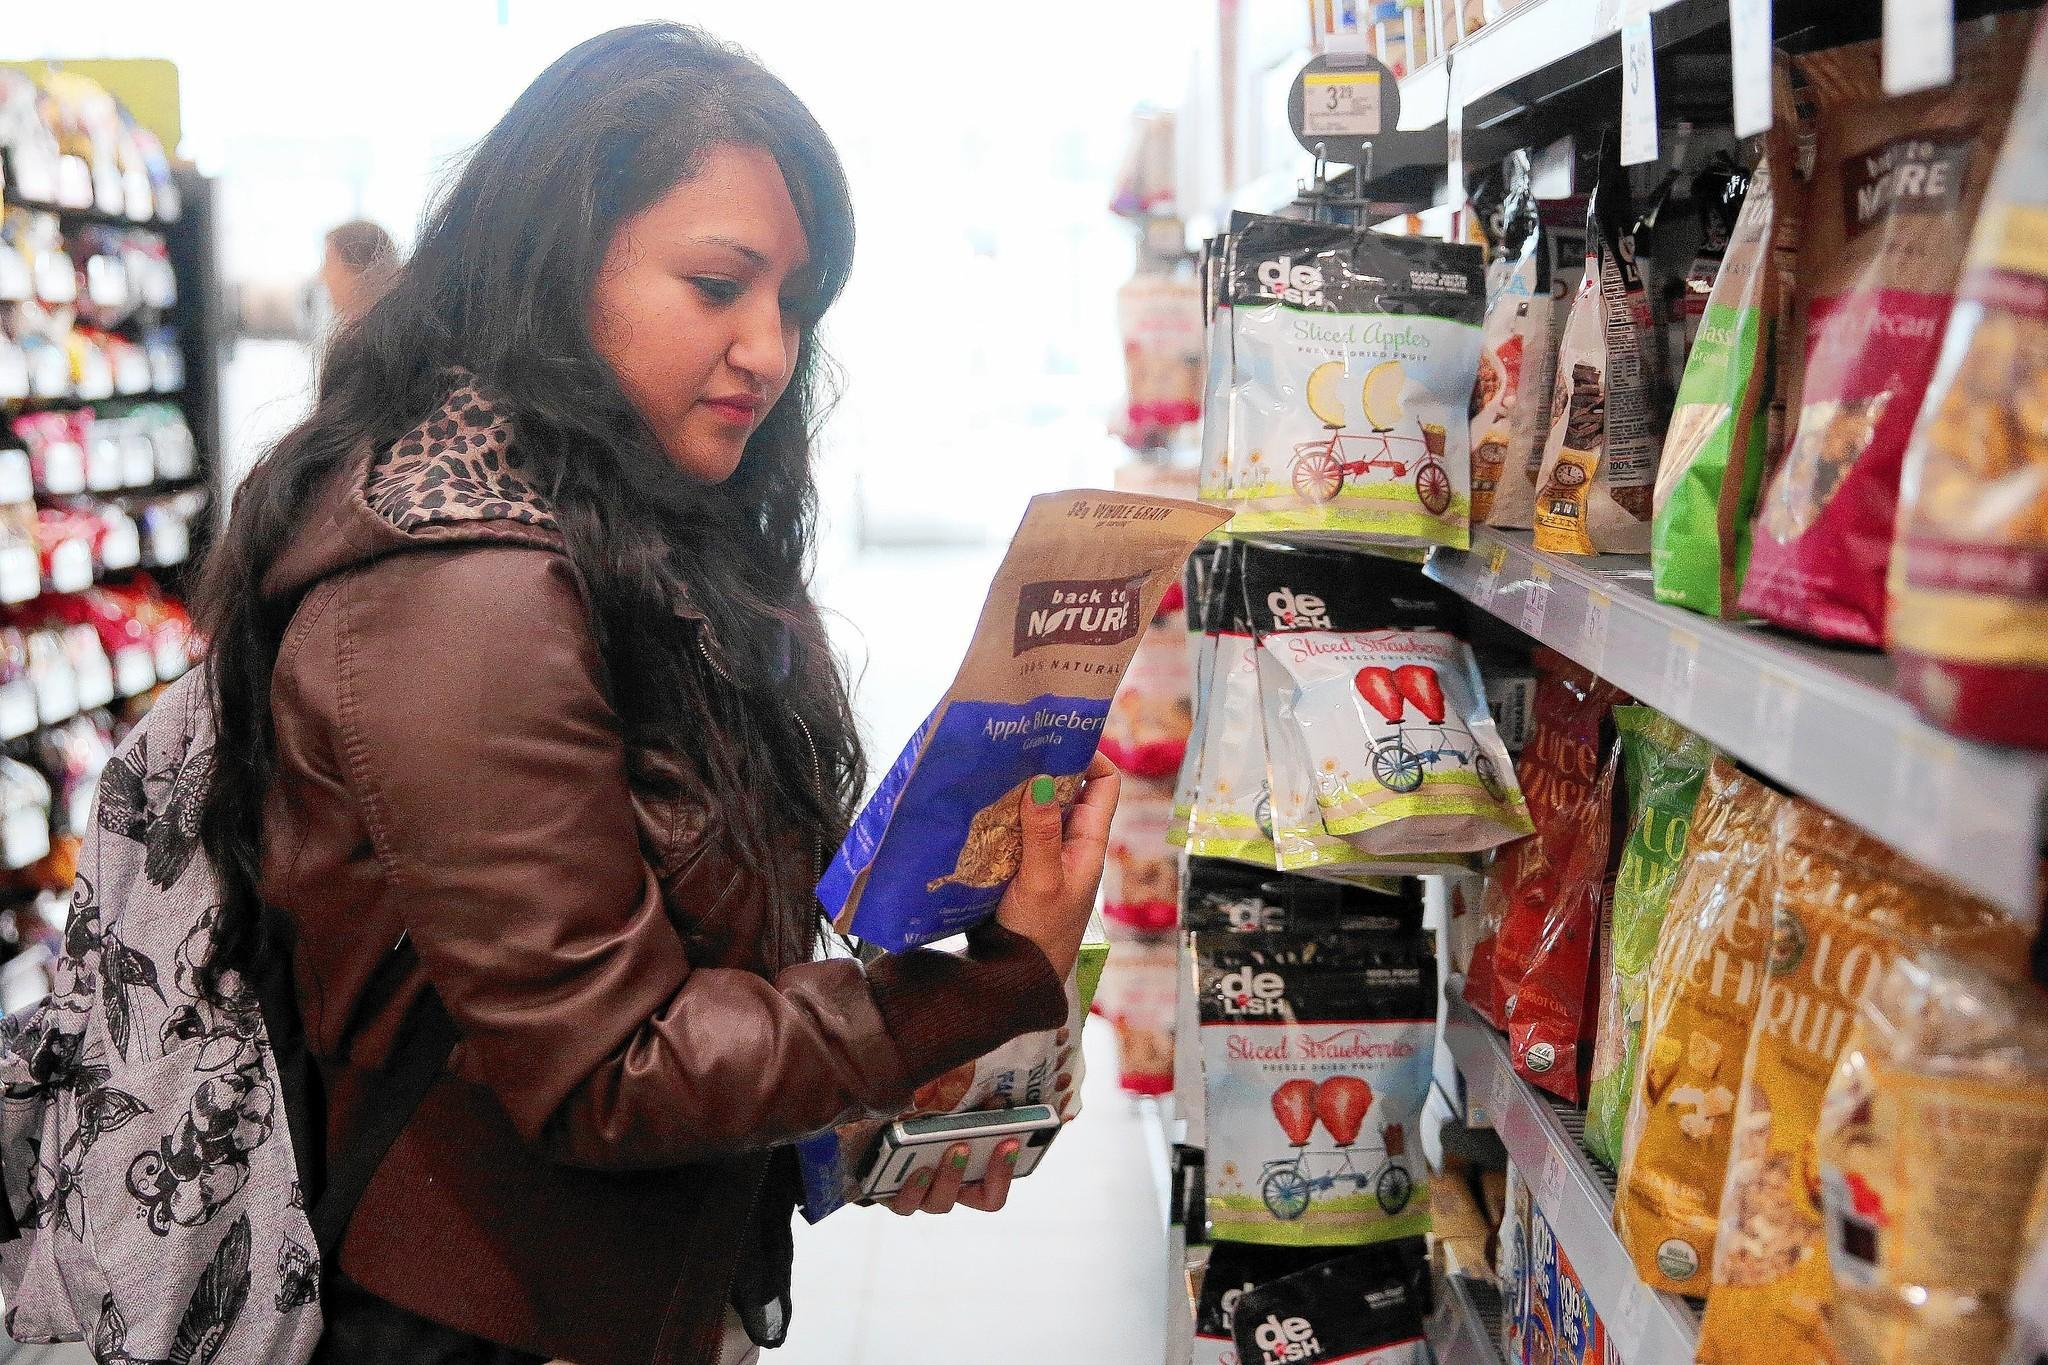 Sara Ordonez, a 23-year-old business student at Harold Washington College, said she snacks to stay energized for class and less ravenous when she gets home for dinner around 8 p.m. She's fond of the new blueberry belVita biscuits. Trend watchers say snacking is replacing the traditional three meals a day.